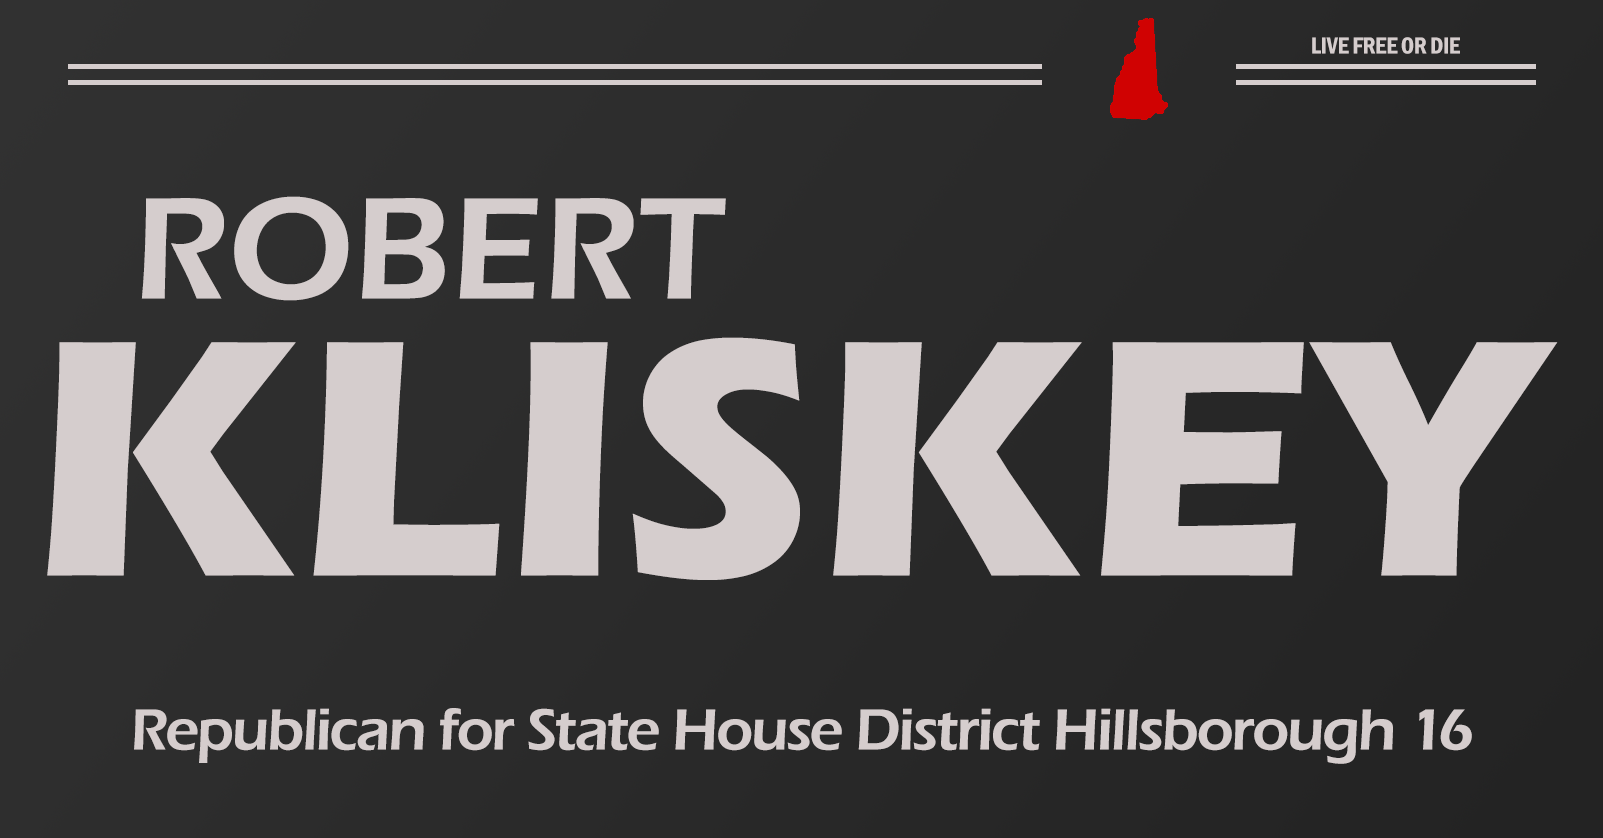 Friends of Robert Kliskey: Robert Kliskey for State House